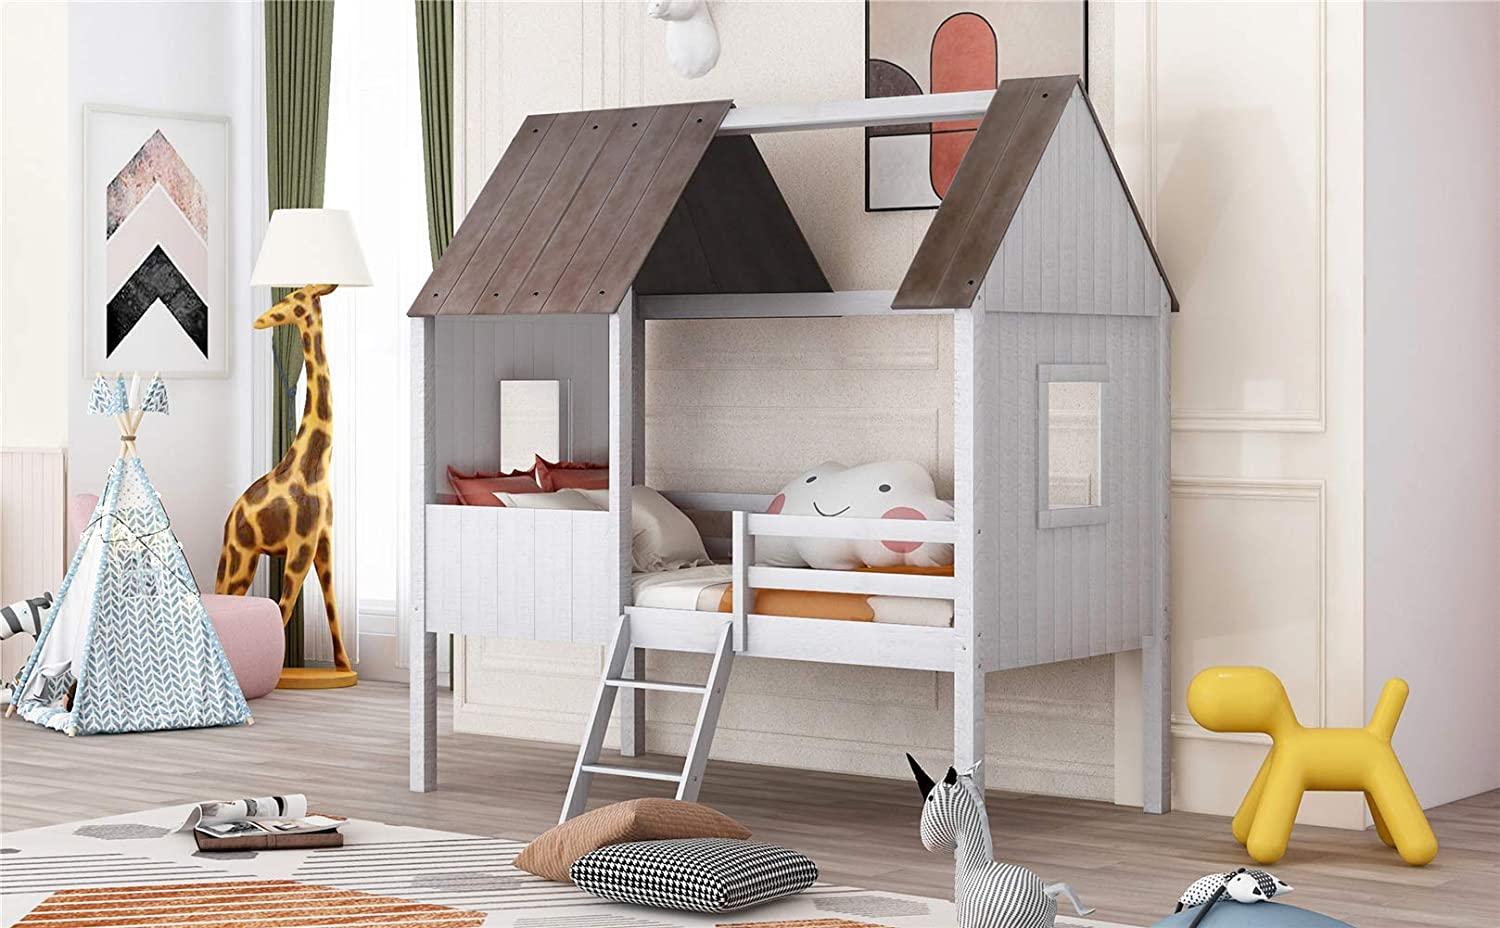 Buy Twin Size Children House Bed Frame Premium Wood Loft Bed Kids Tent Bed Play Tent Comfort Safe Antique White Online In Indonesia B08nd84v7w